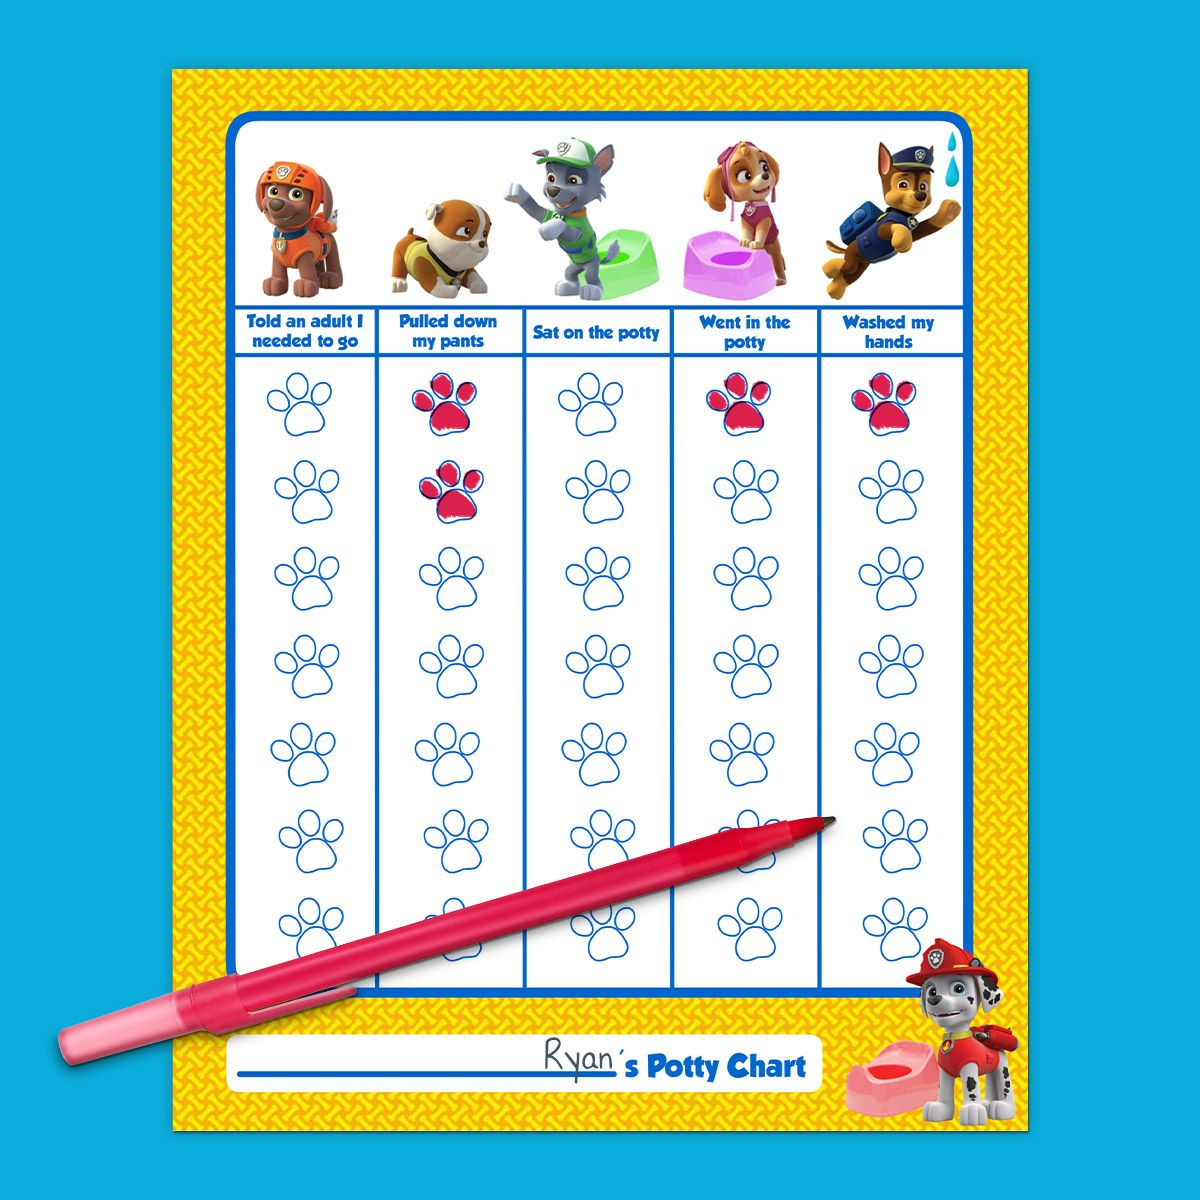 Colouring in reward charts - The Top 10 Paw Patrol Printables Of All Time